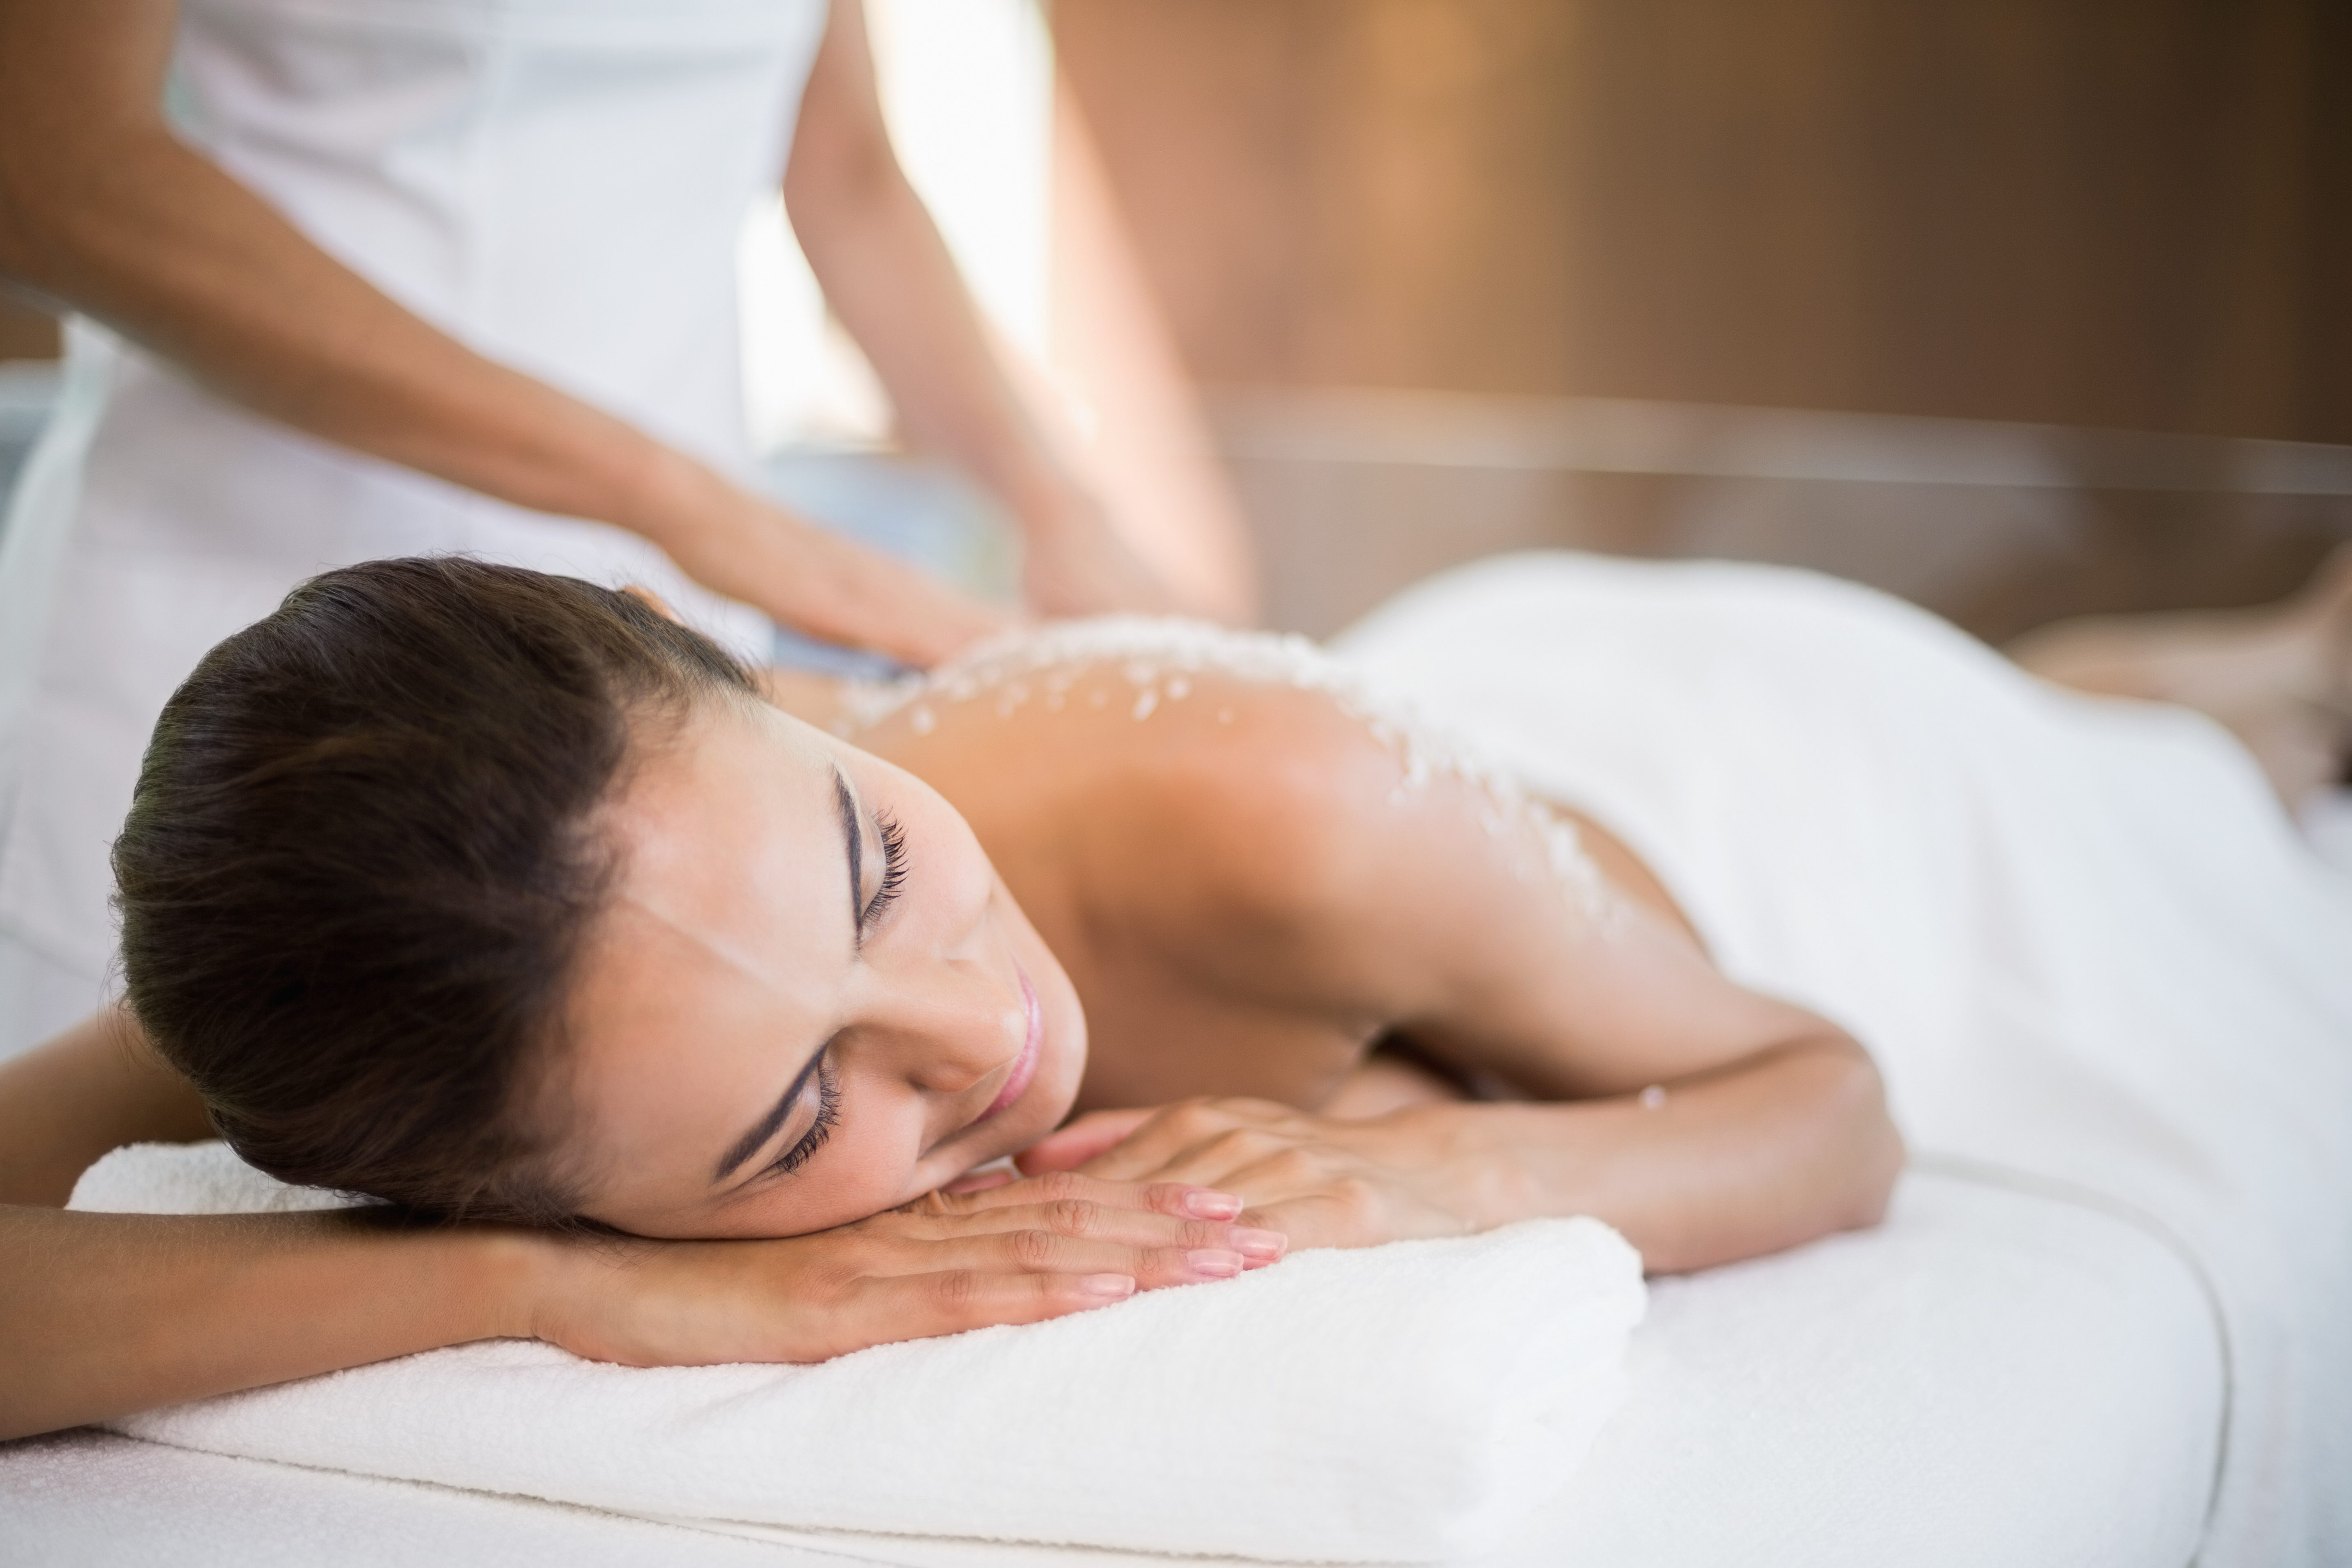 3 best day spas in charlotte nc - buy a house in charlotte